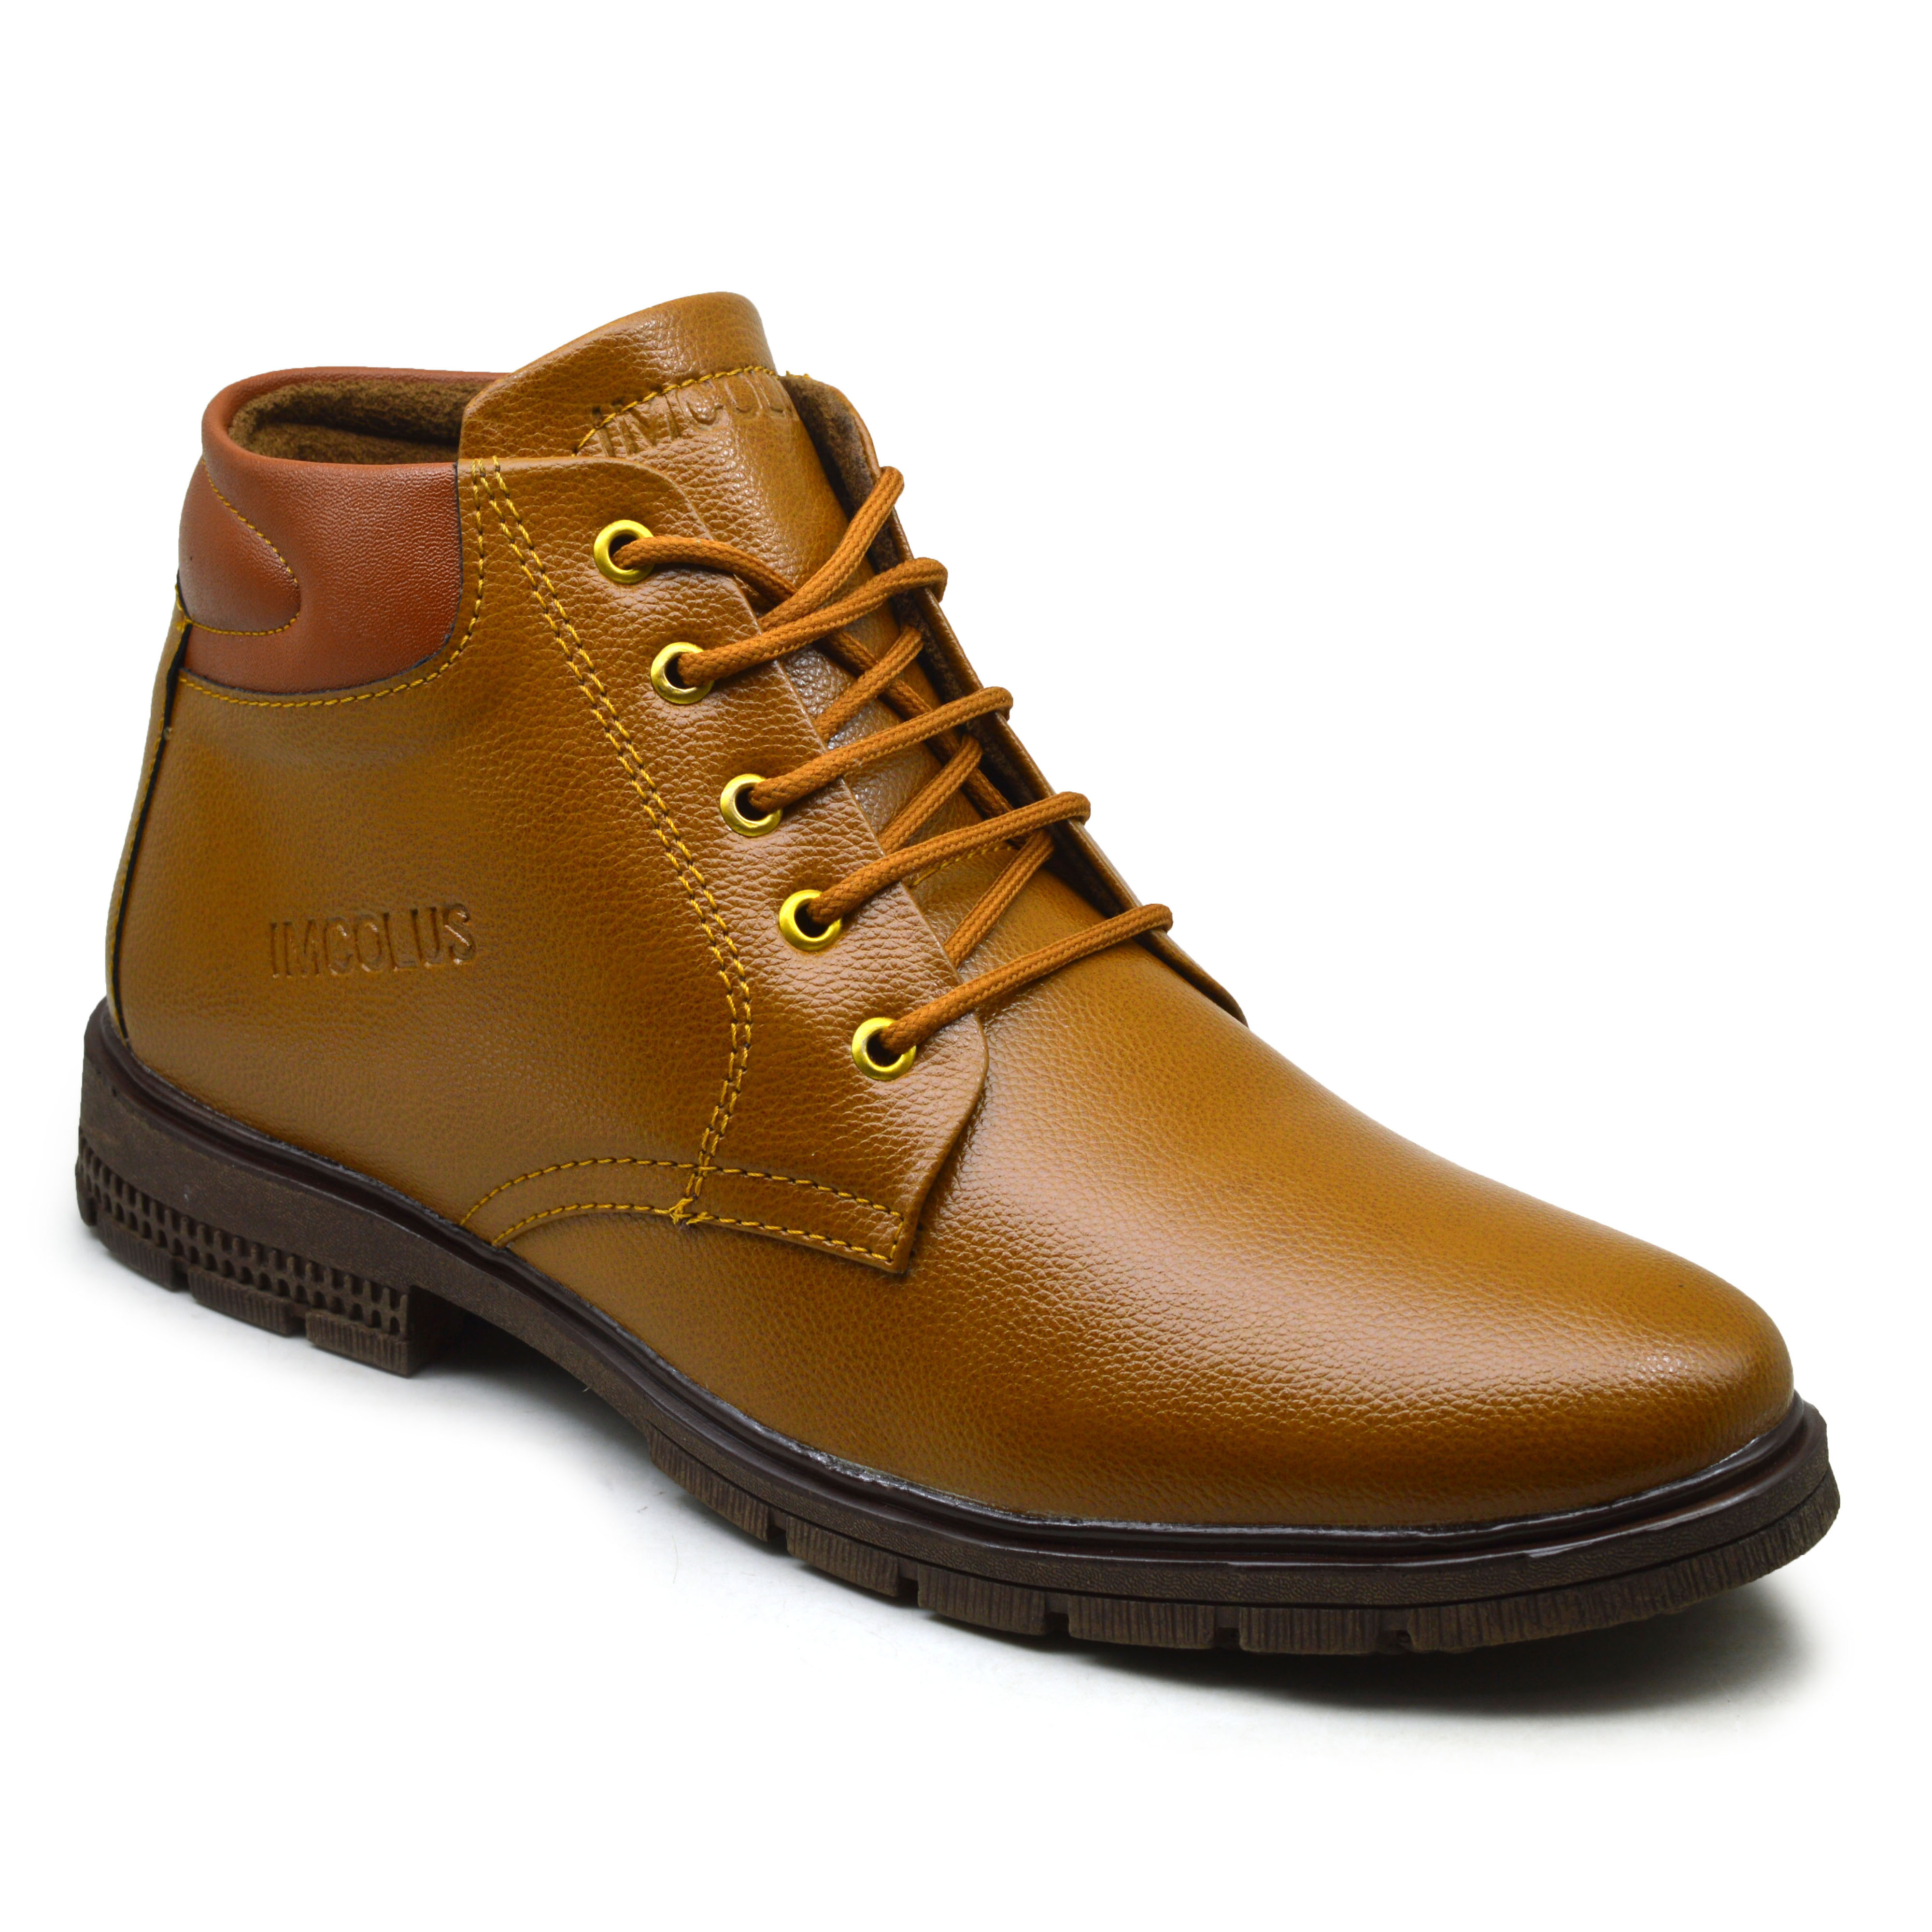 IMC592.31359_TN HIGH QUALITY CASUAL BOOT SHOE FOR MEN IMC592.31359_TN (TAN, 6TO9, 4 PAIRS)